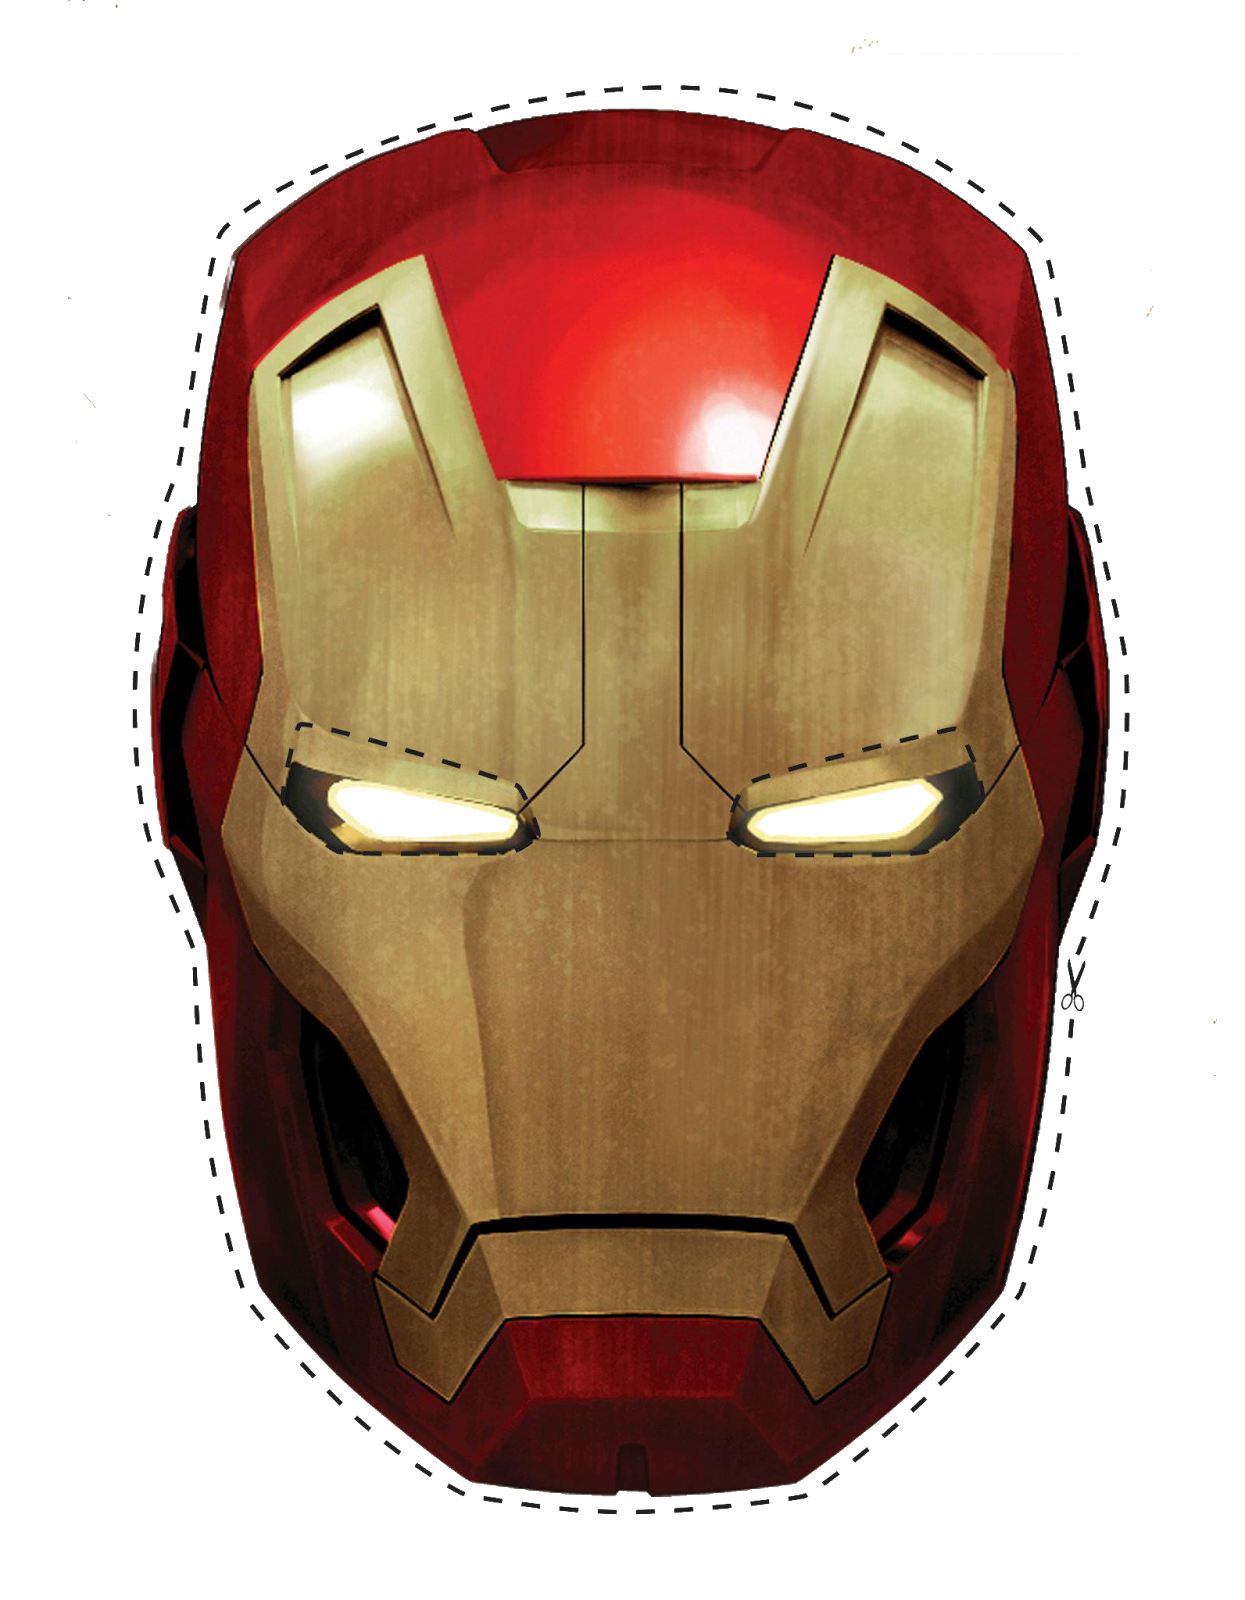 picture regarding Iron Man Mask Printable called Totally free Printable Iron Person Mask. - Oh My Fiesta! for Geeks